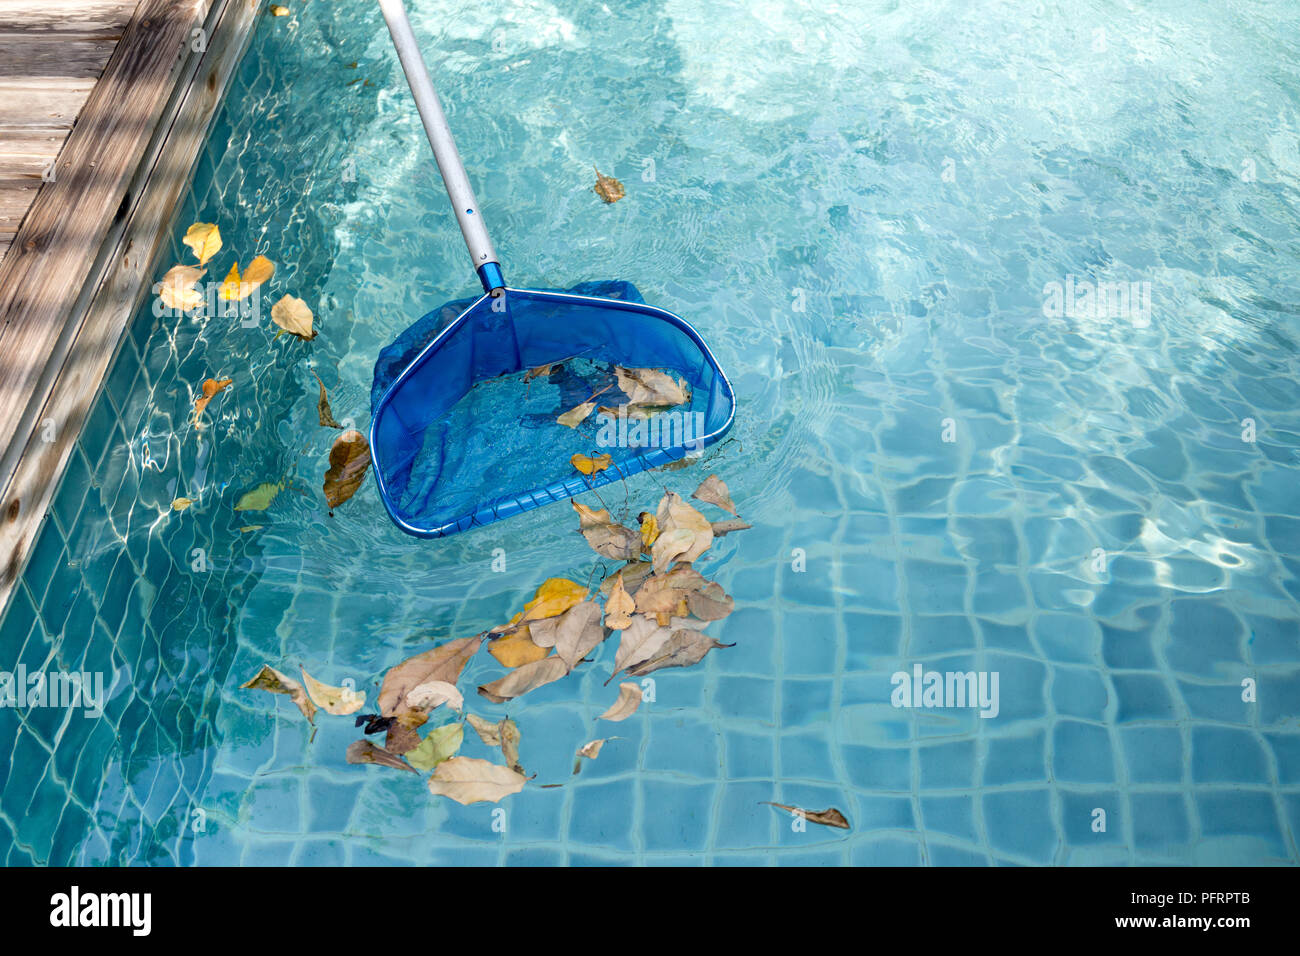 Cleaning swimming pool of fallen leaves with blue skimmer net Stock ...